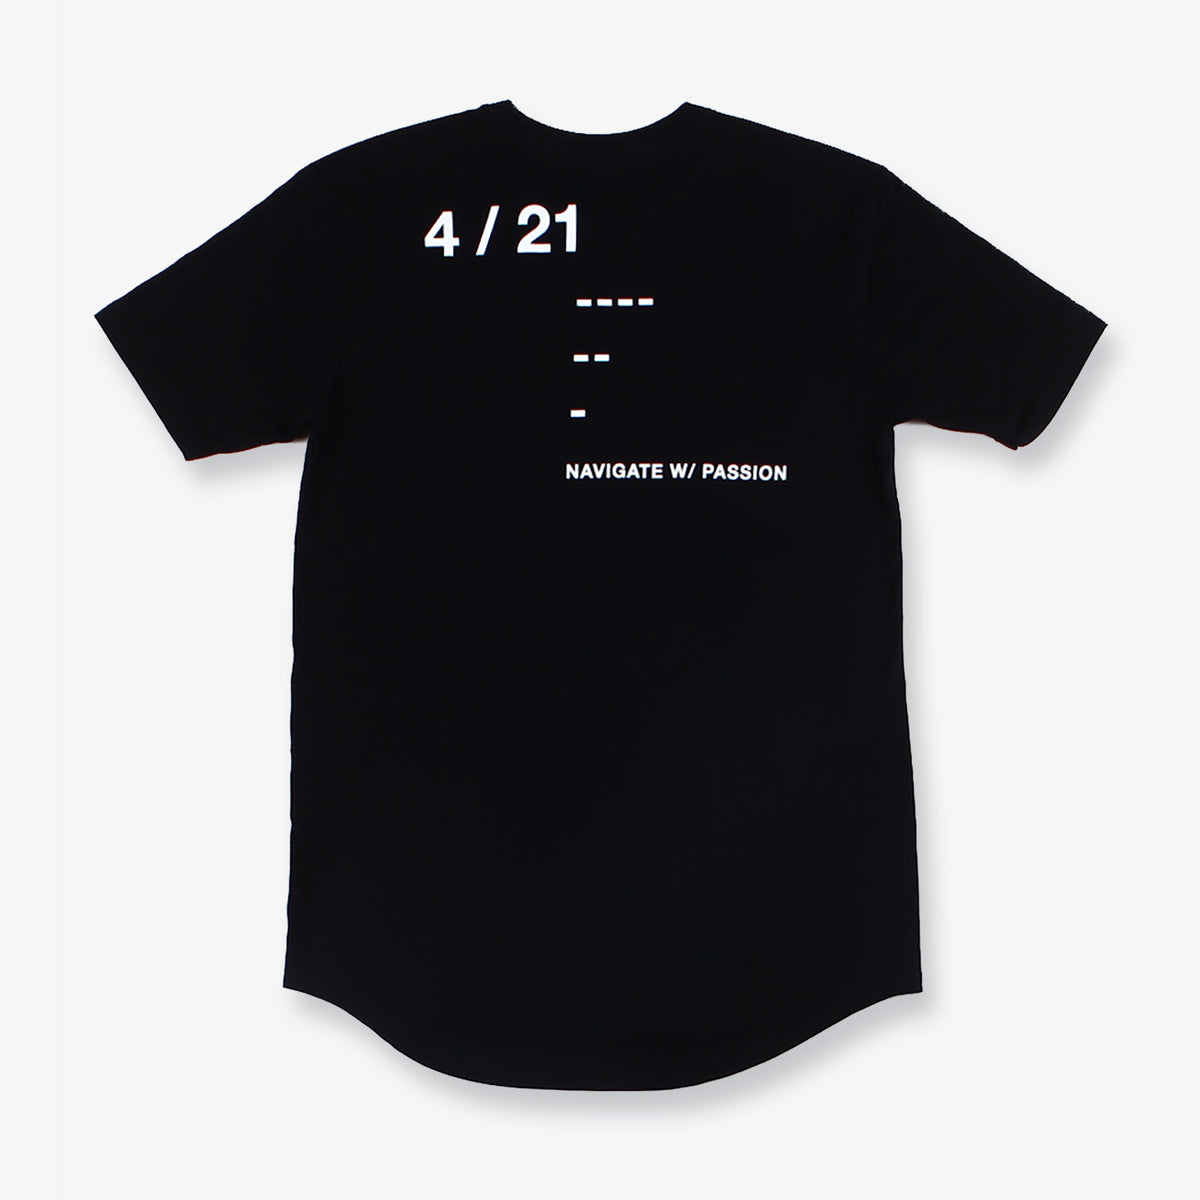 Thomas Tall Tee - Black